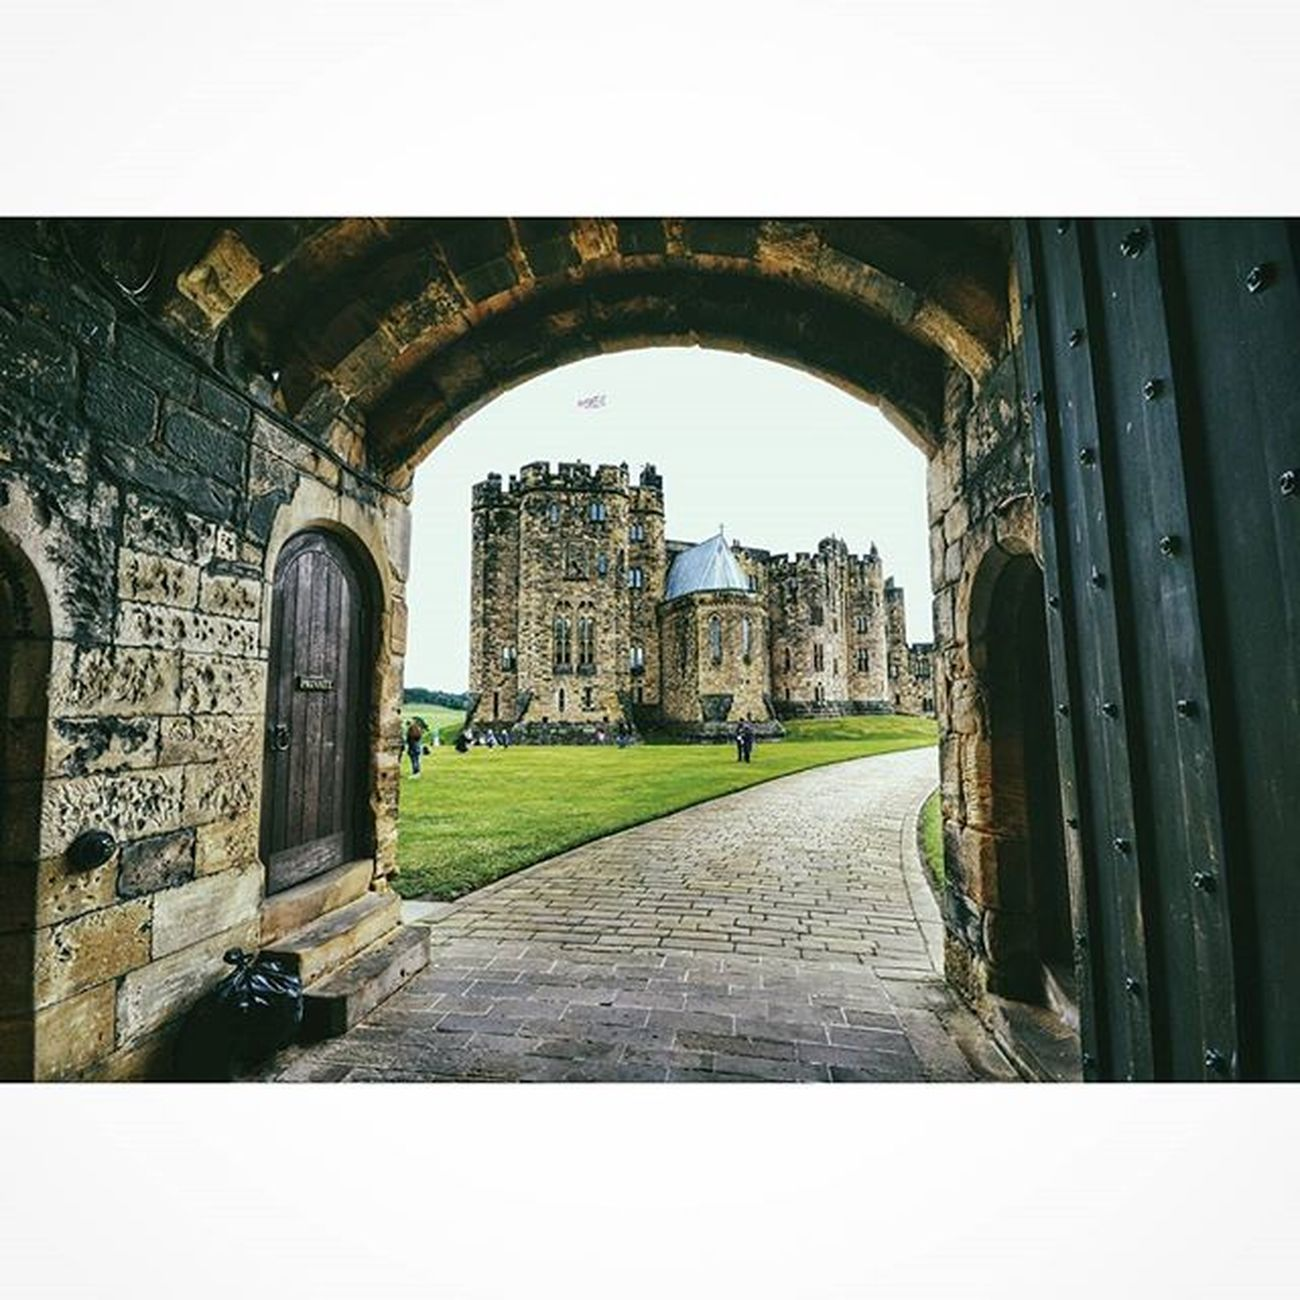 Alnwick castle (aka Hogwarts)... Northumberland Castles Explorenland CapturingBritain Fiftyshadesof_history Harrypotter Nexus_nation Ig_britishisles Alnwickcastle Historic_captures